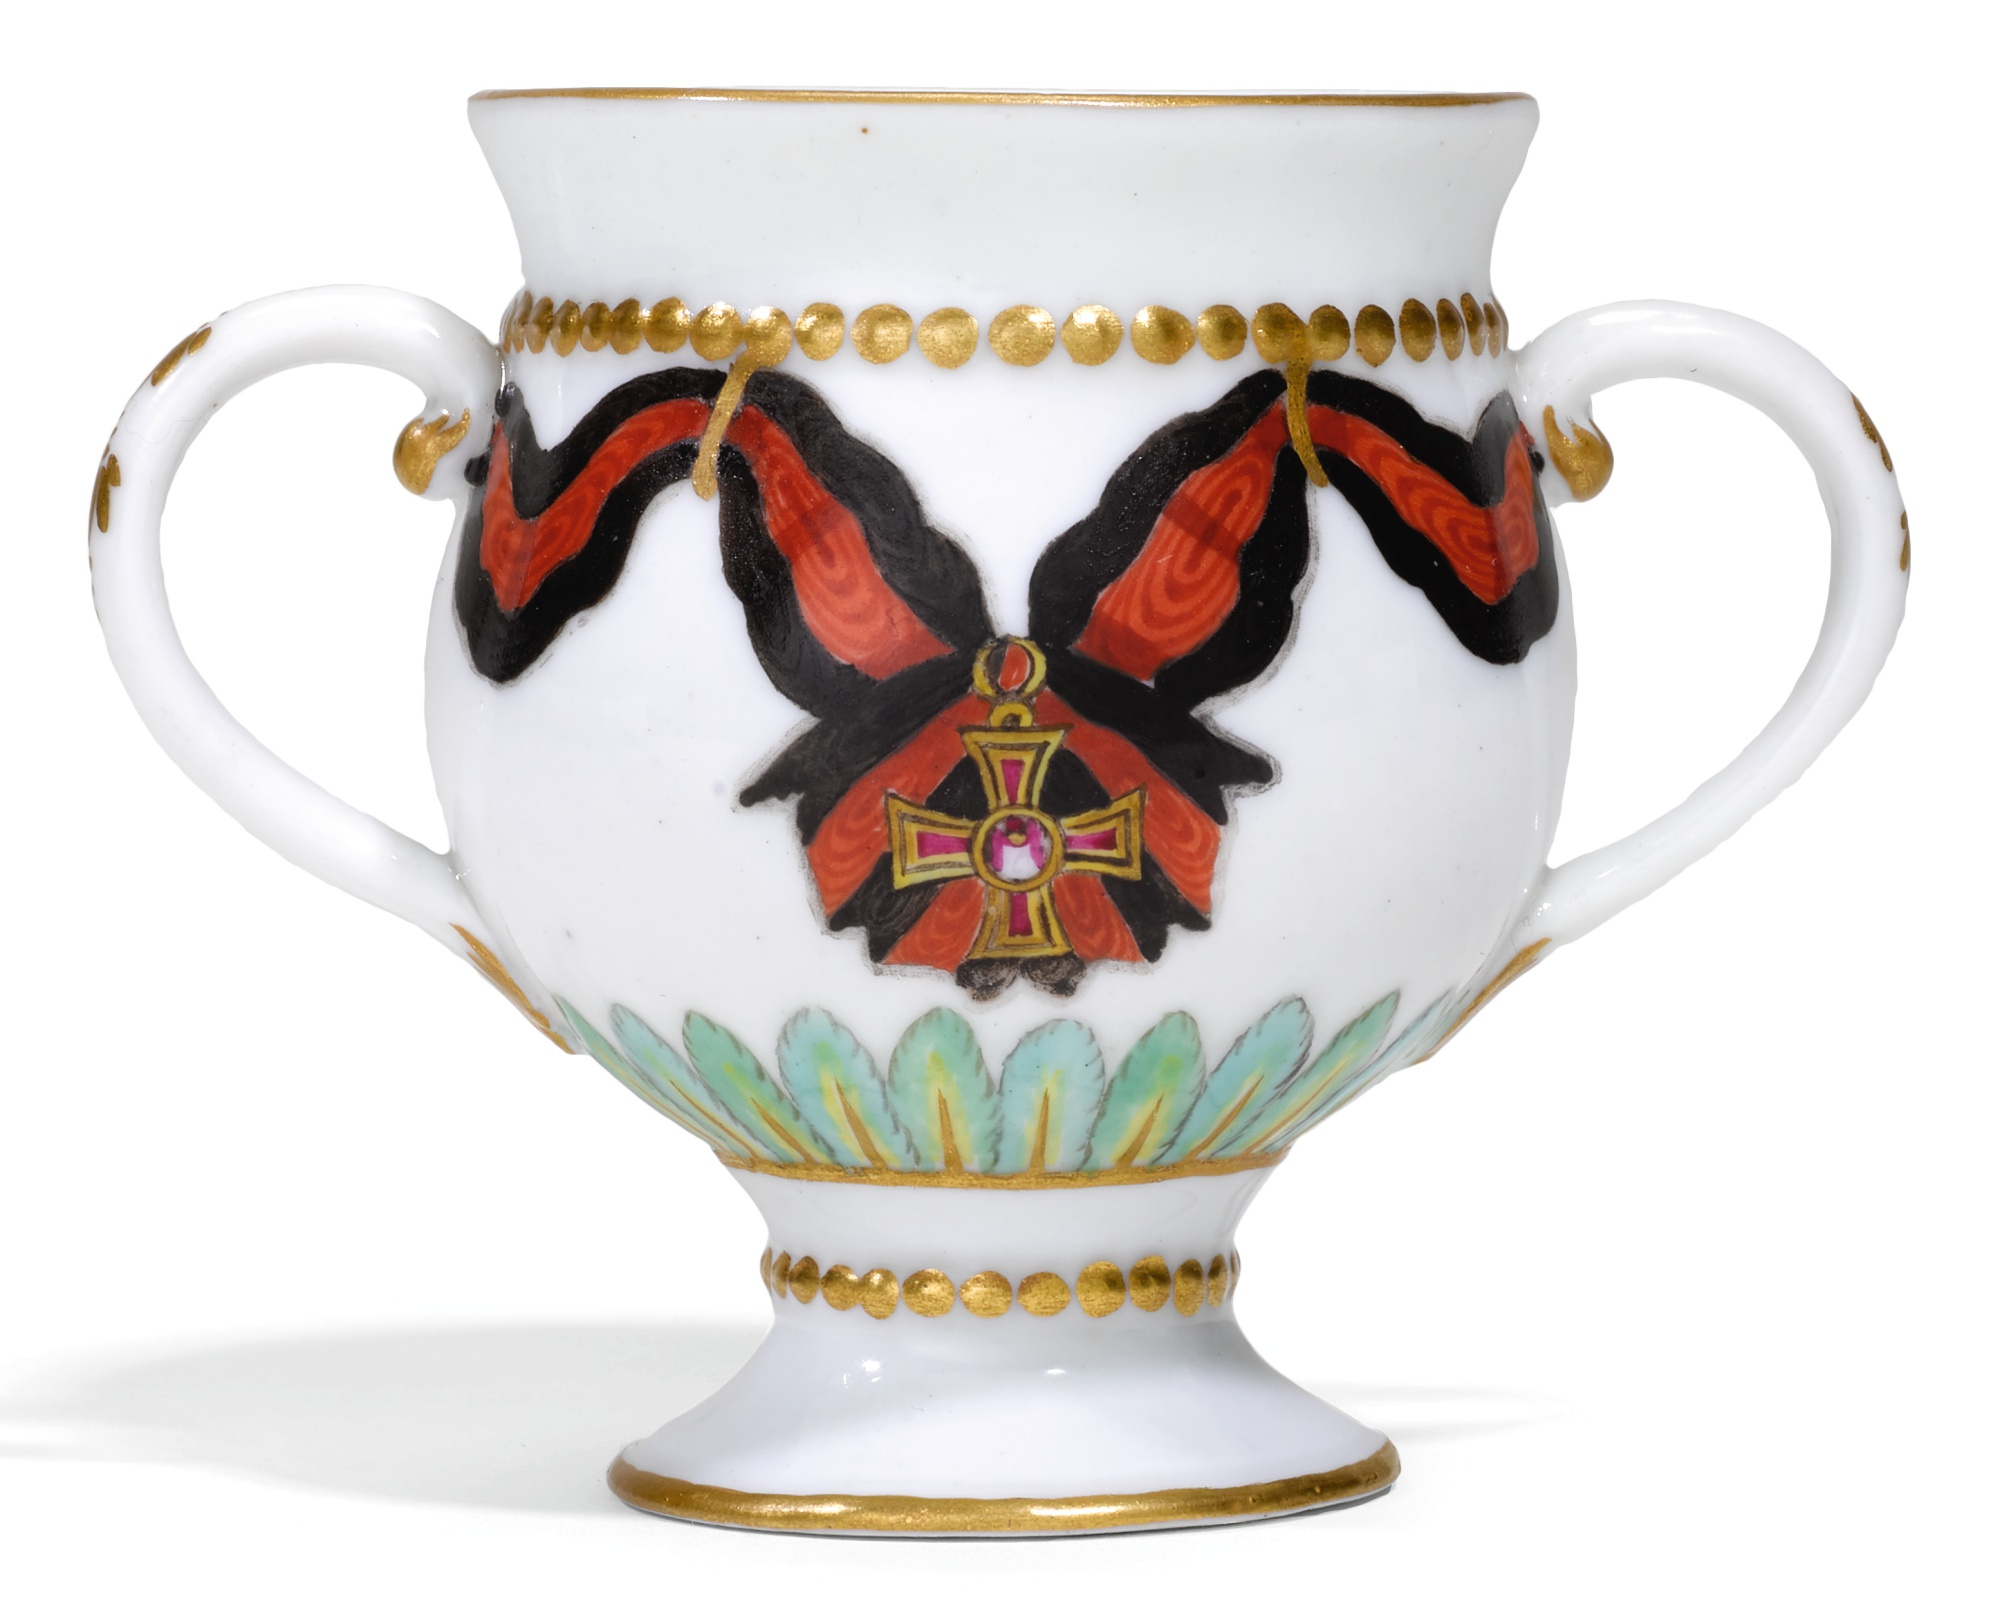 A RARE PORCELAIN ICE OR CUSTARD CUP FROM THE ORDER OF SAINT